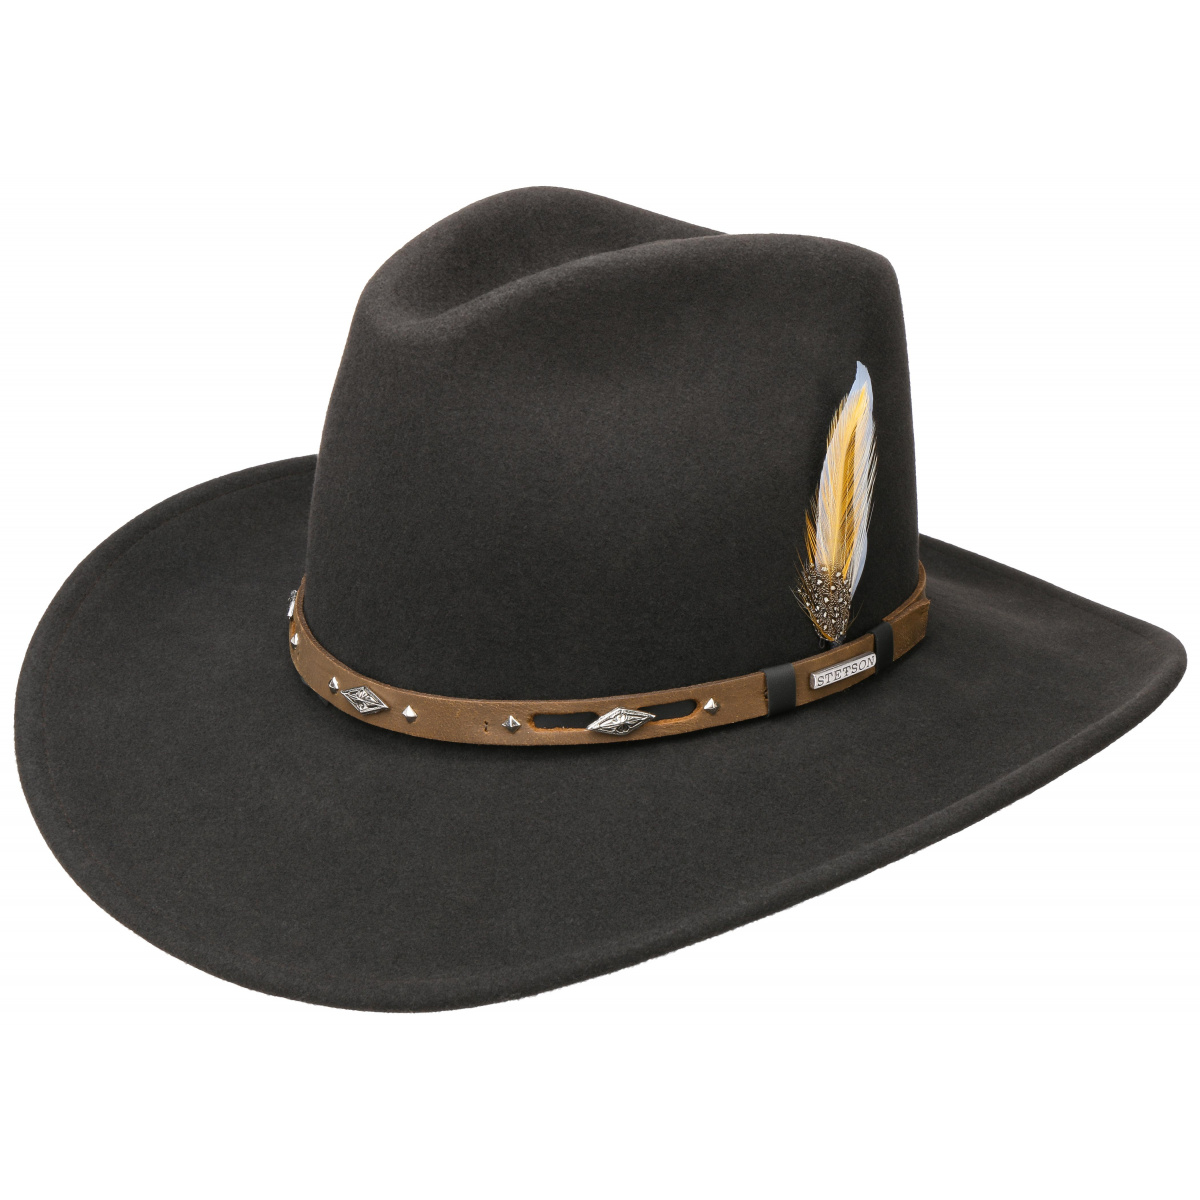 Hats stetson made are where A tour